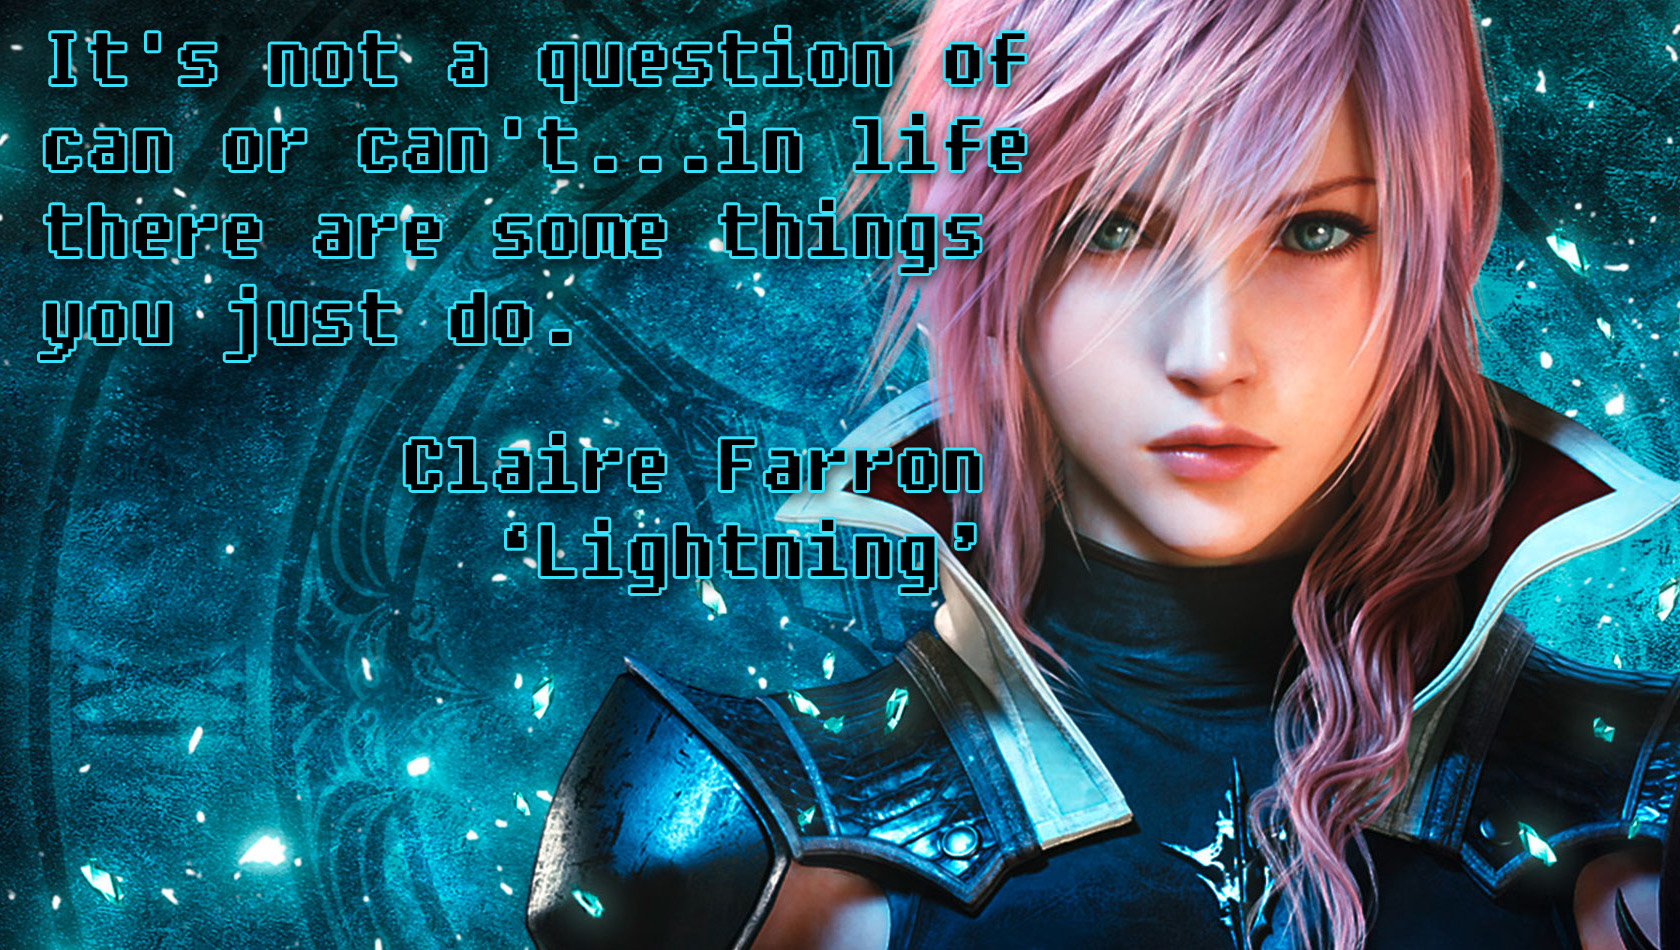 Video Game Quotes: Final Fantasy XIII on Mindset ...